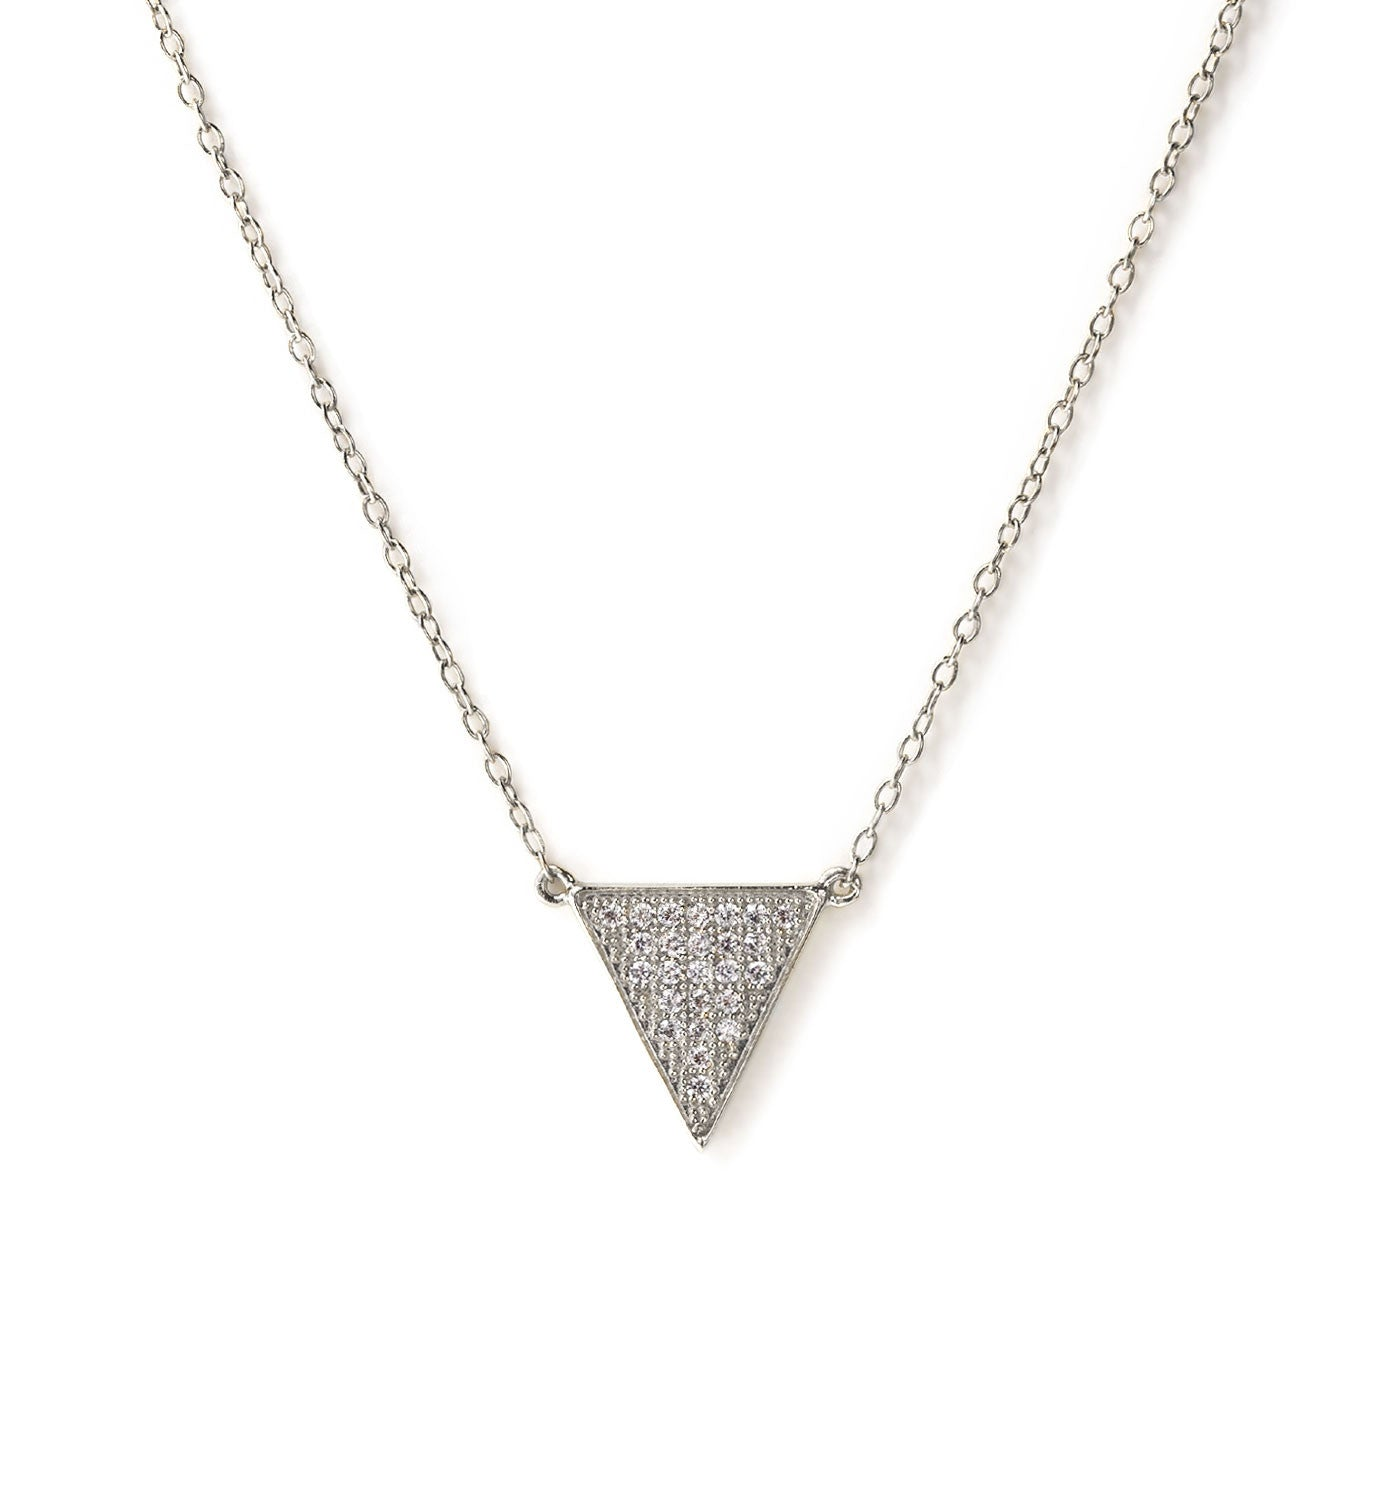 Delta Crystal Necklace, Necklaces - AMY O. Jewelry